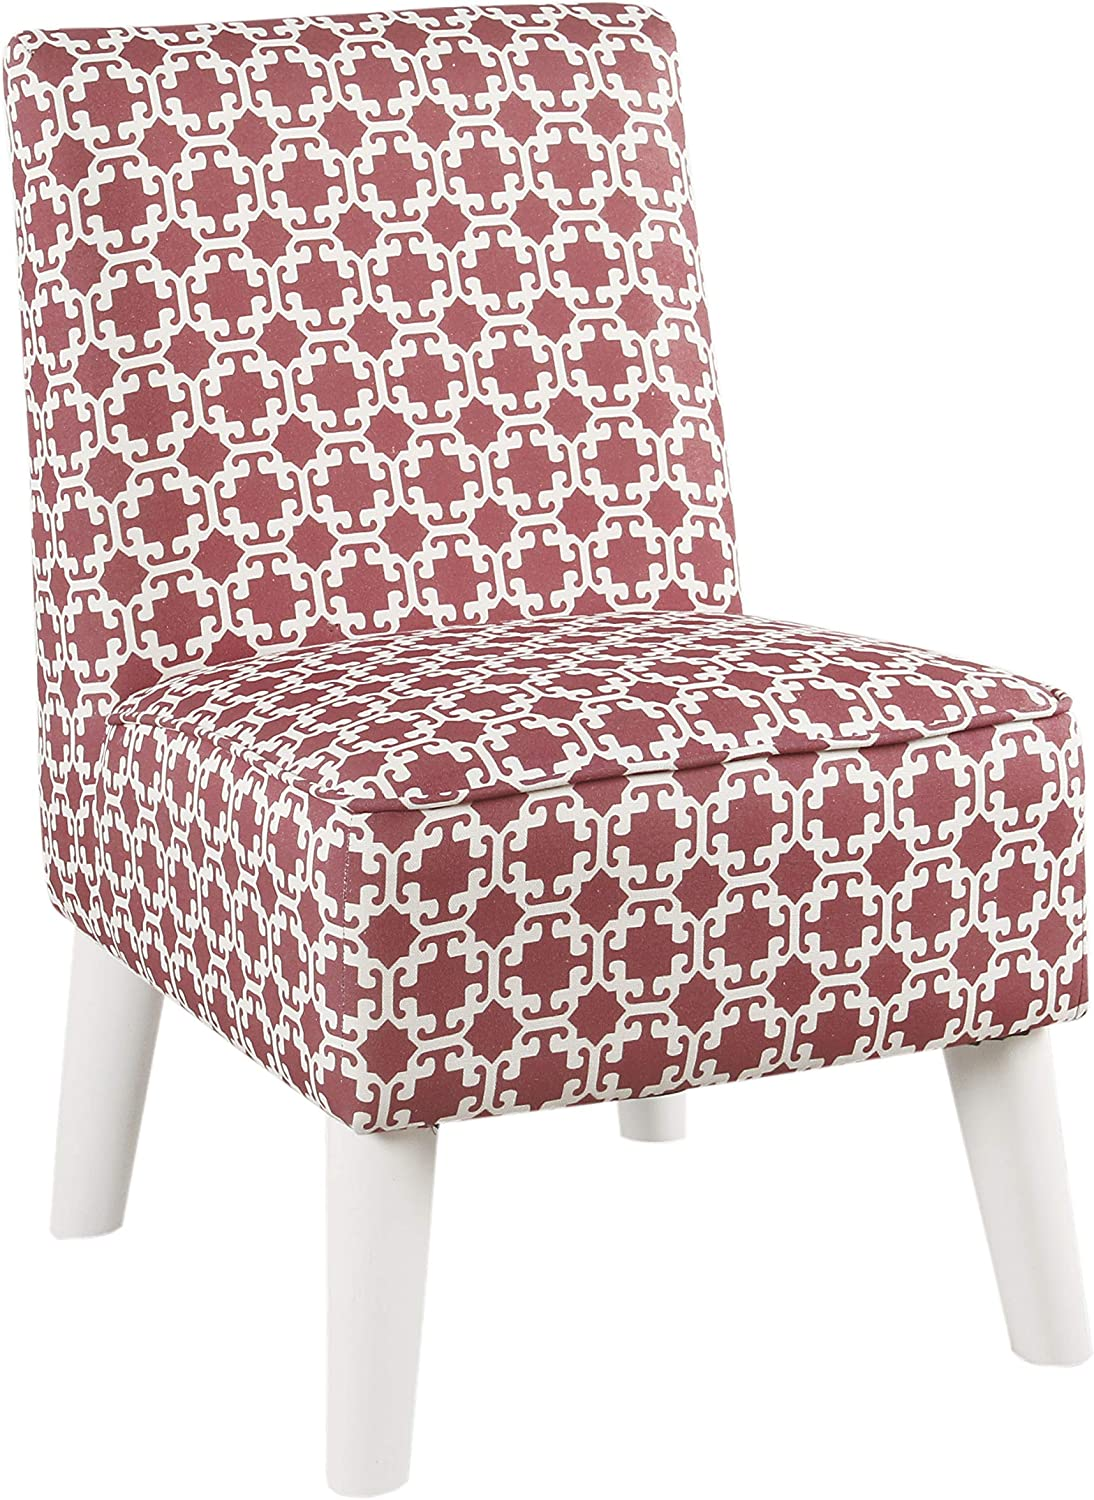 Benjara BM195746 Lattice Print Fabric Upholstered Kids Slipper Chair with Splayed Wooden Legs, Pink and White